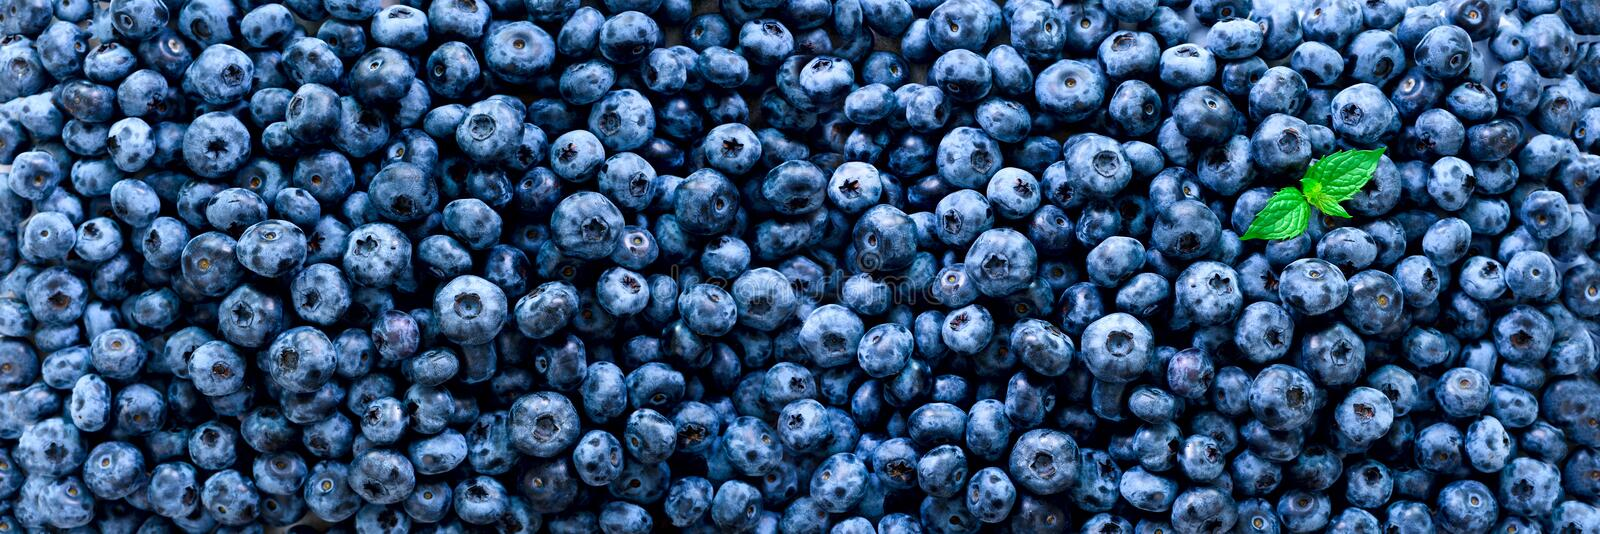 Fresh blueberries background with copy space for your text. Border design. Vegan and vegetarian concept. Macro texture royalty free stock photos